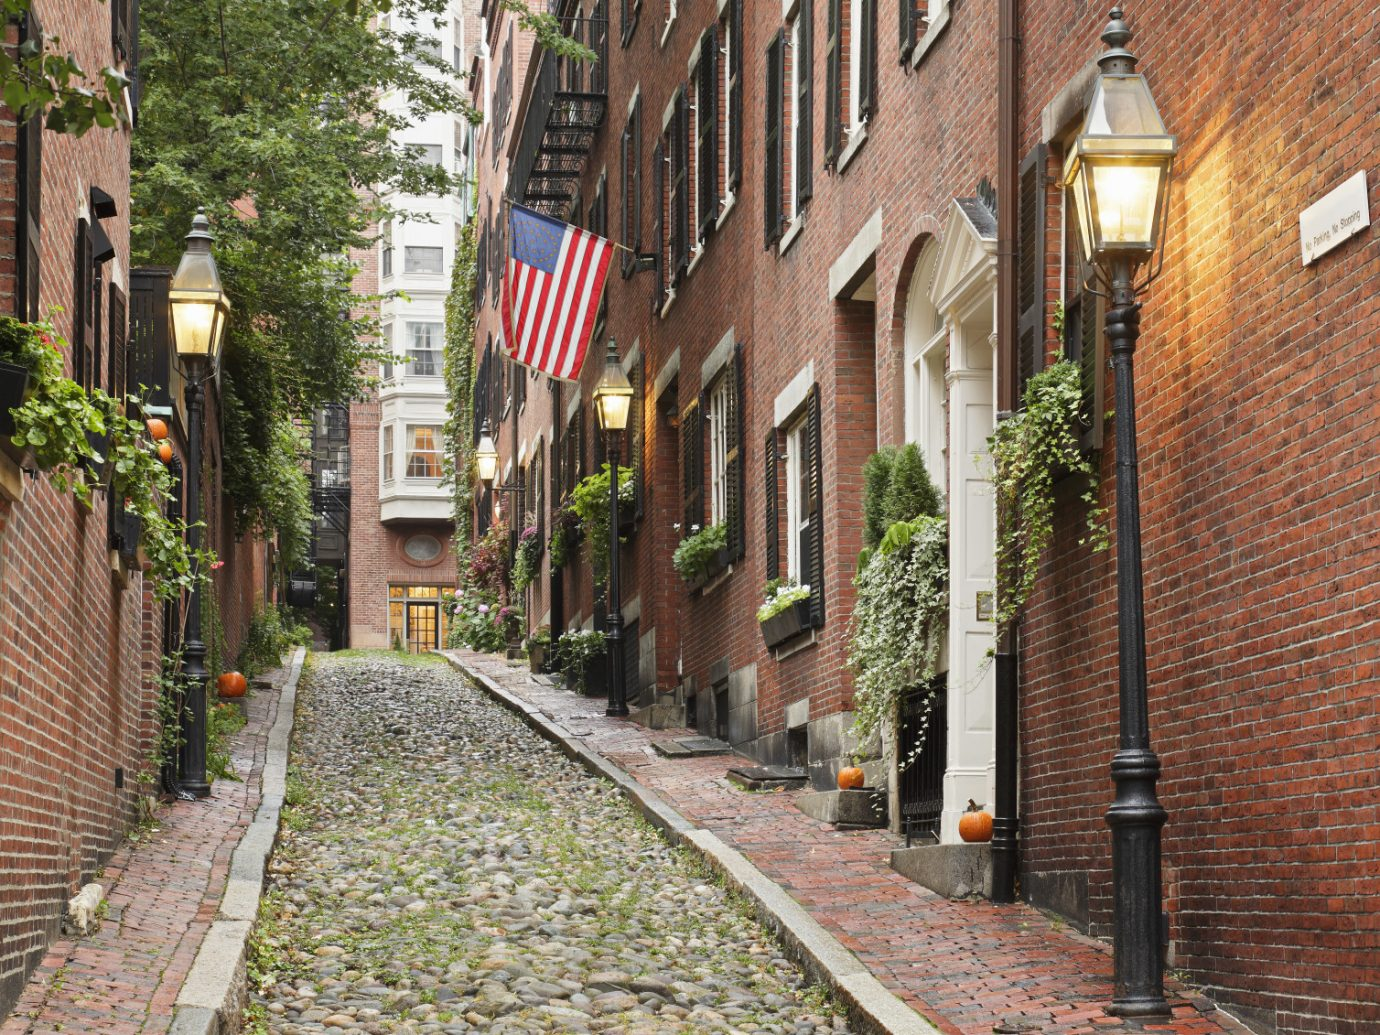 View of an alley in Boston